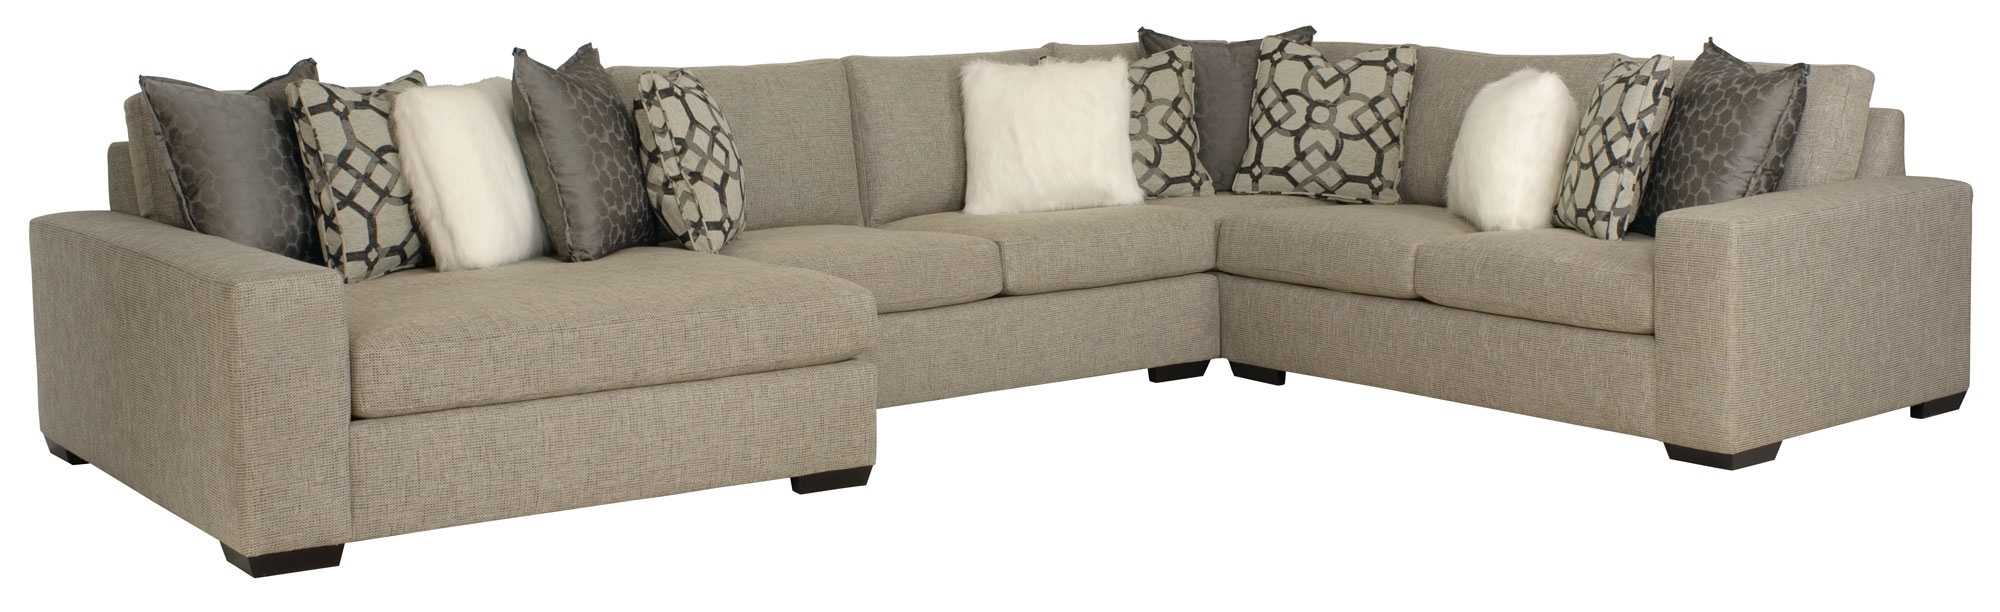 Most Current Jackson Tn Sectional Sofas Intended For Best Bernhardt Sectional Furniture Gallery – Liltigertoo (View 20 of 20)